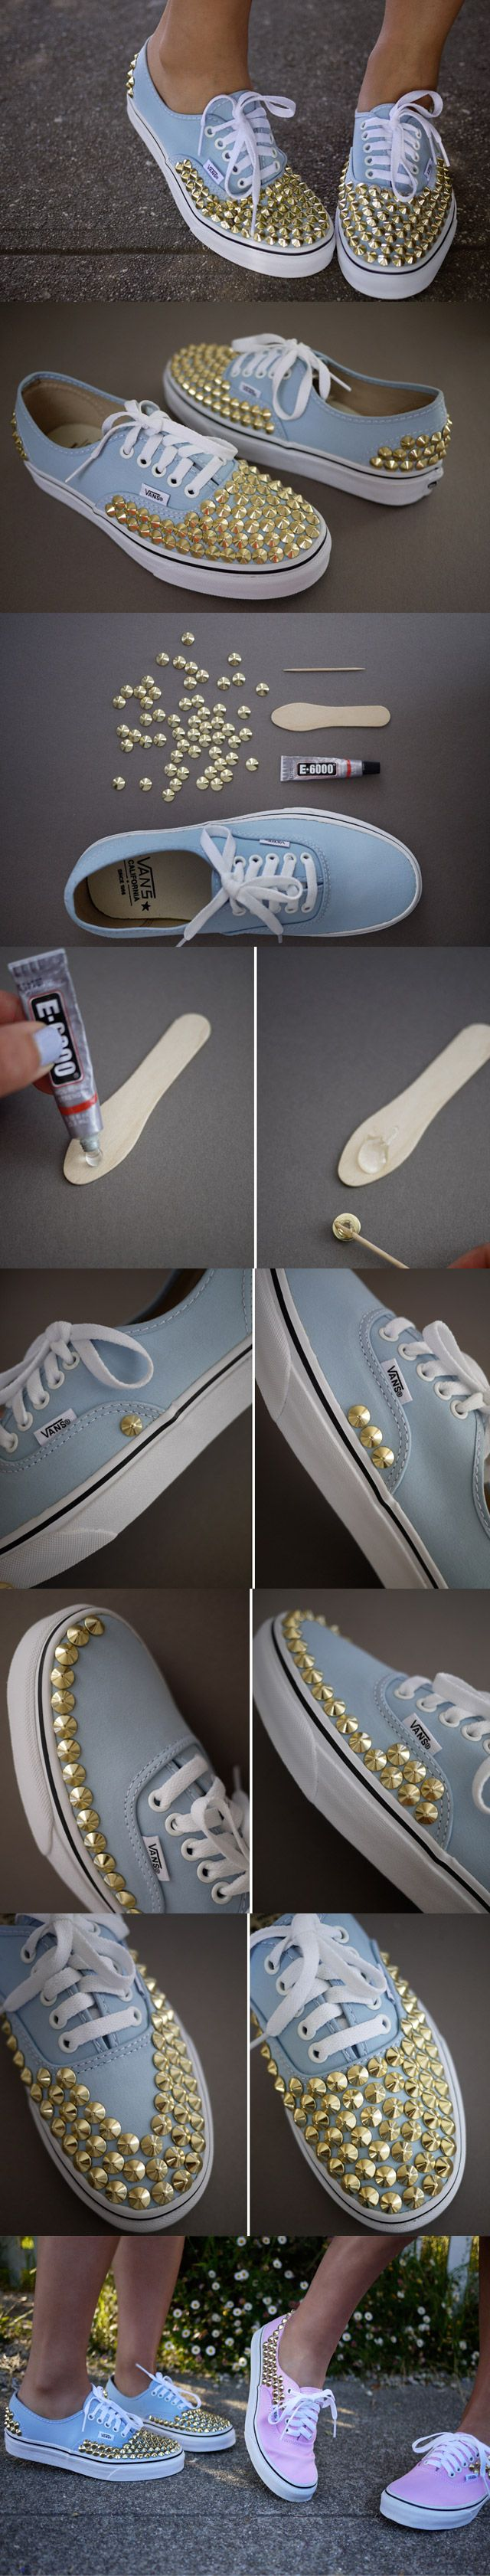 DIY Studded Shoes, we have everything you need to customise your shoes with studs, spikes, crystals and buttons.  The best glue to use when embellishing your shoes is E6000